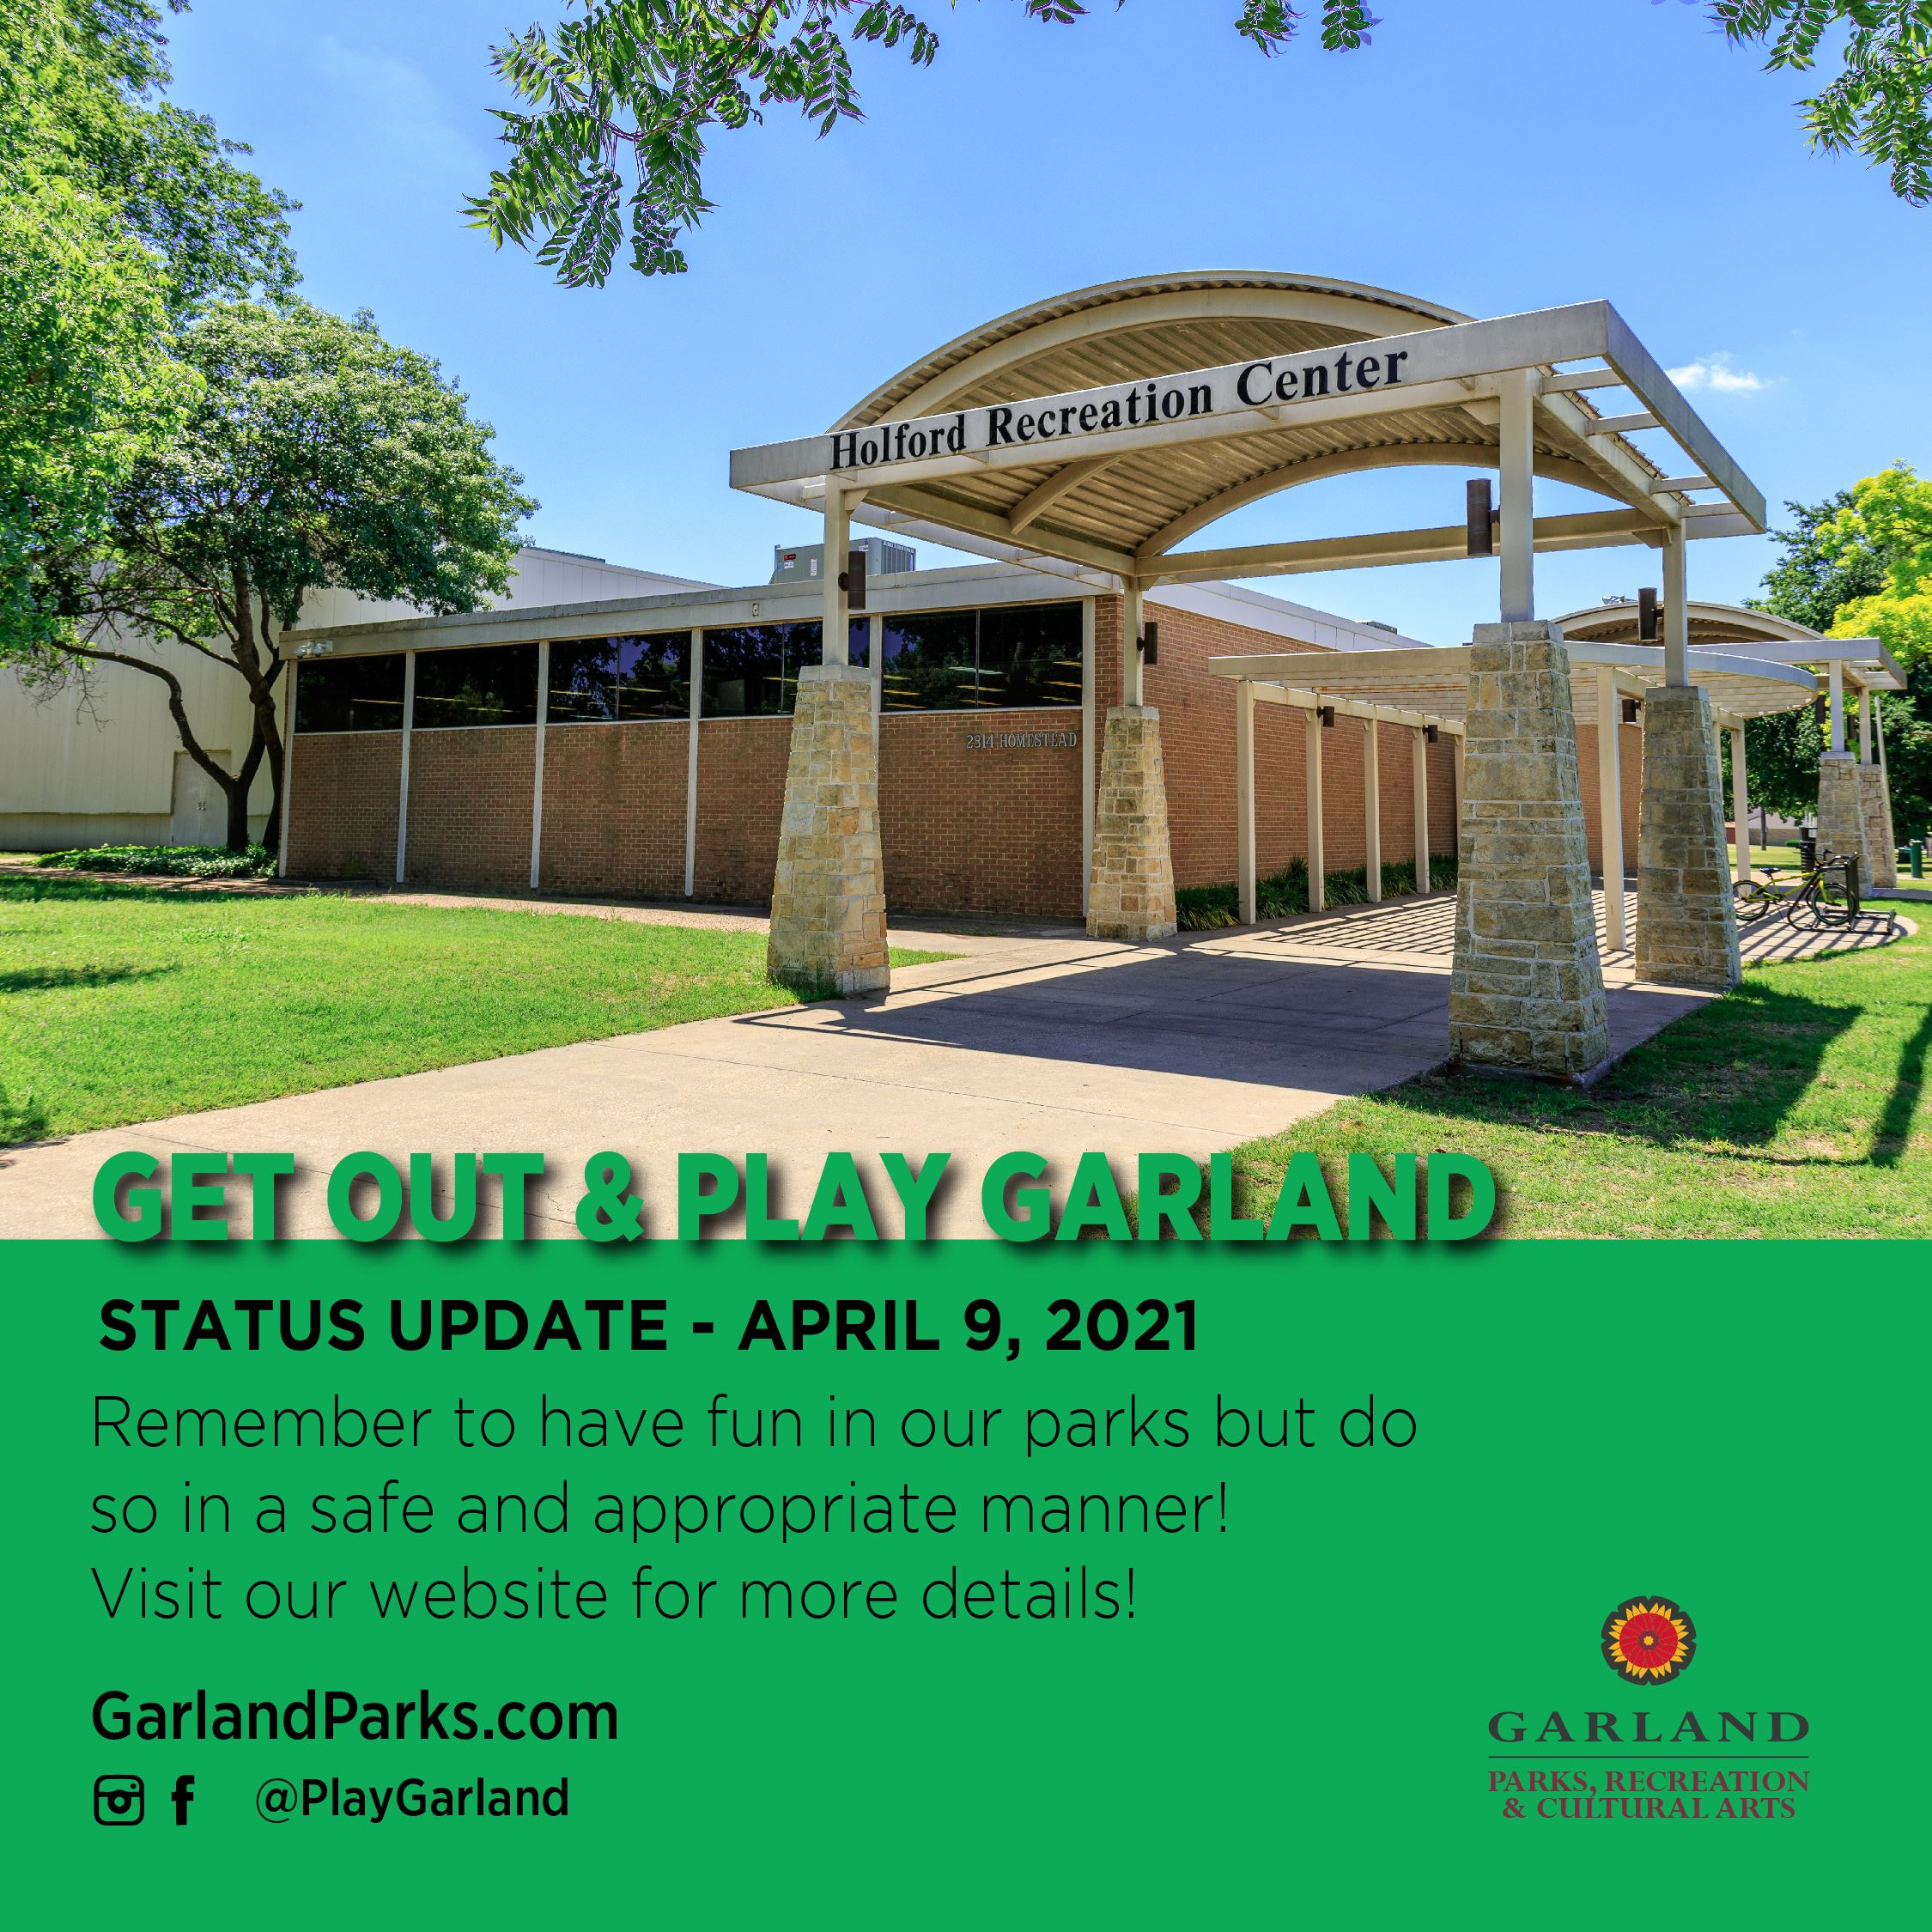 Get Out and Play Update April 9, 2021 - Holford Recreation Center sign